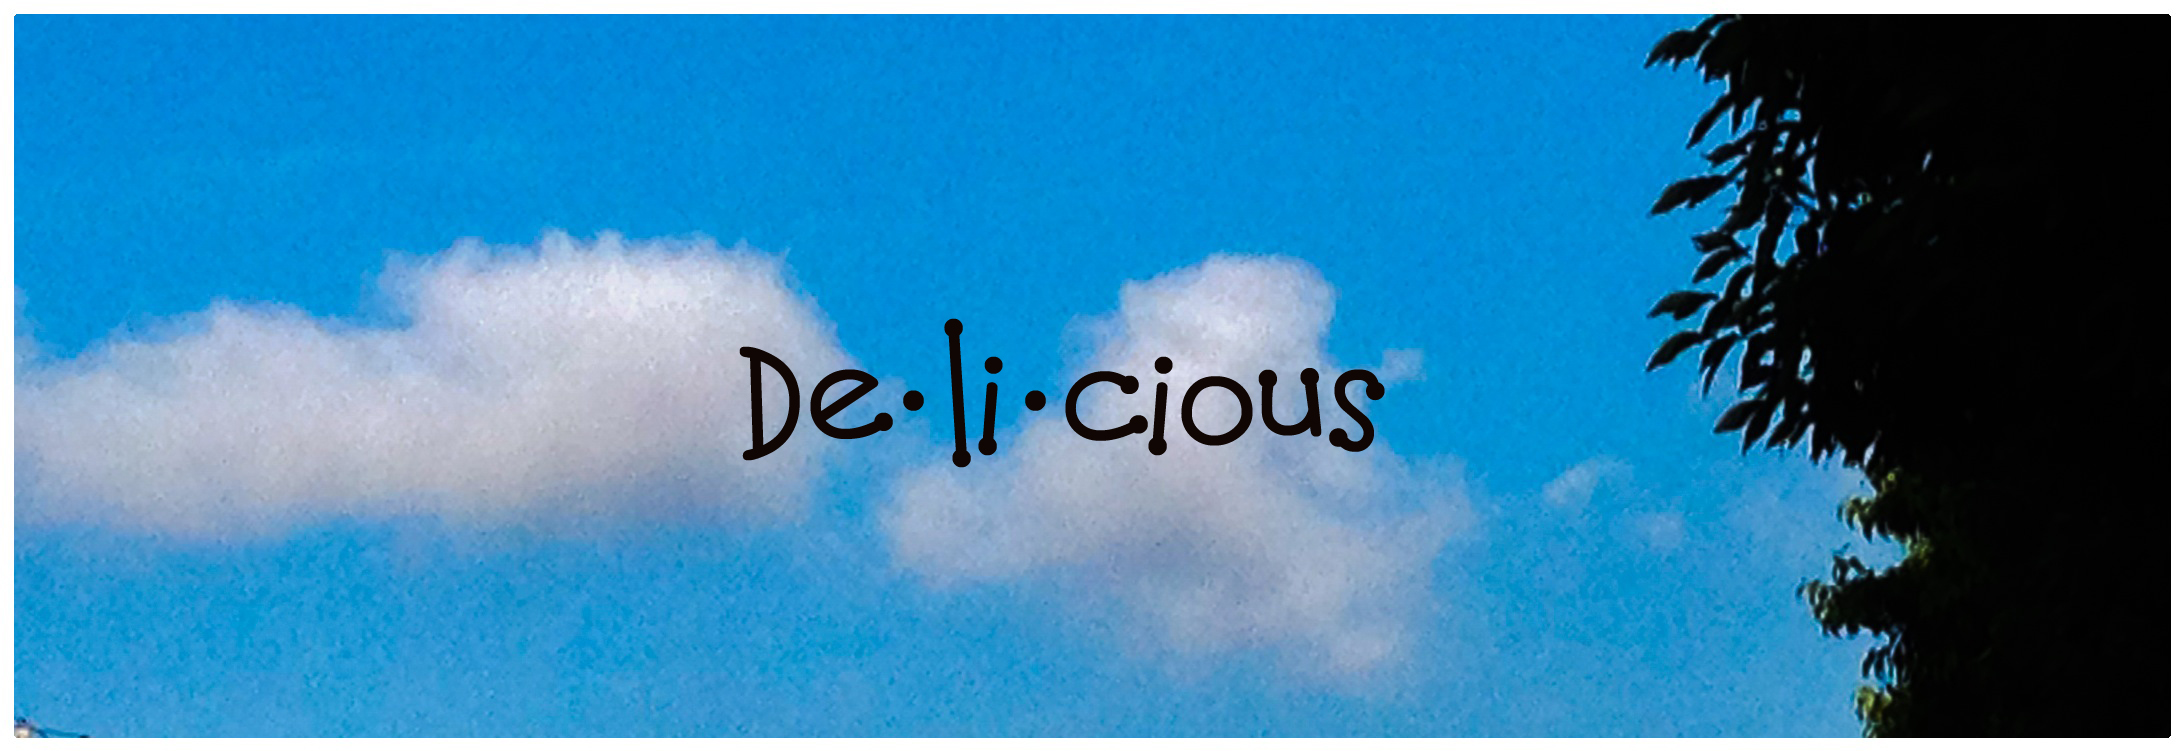 Clouds and blue sky with the word delicious in the sky.